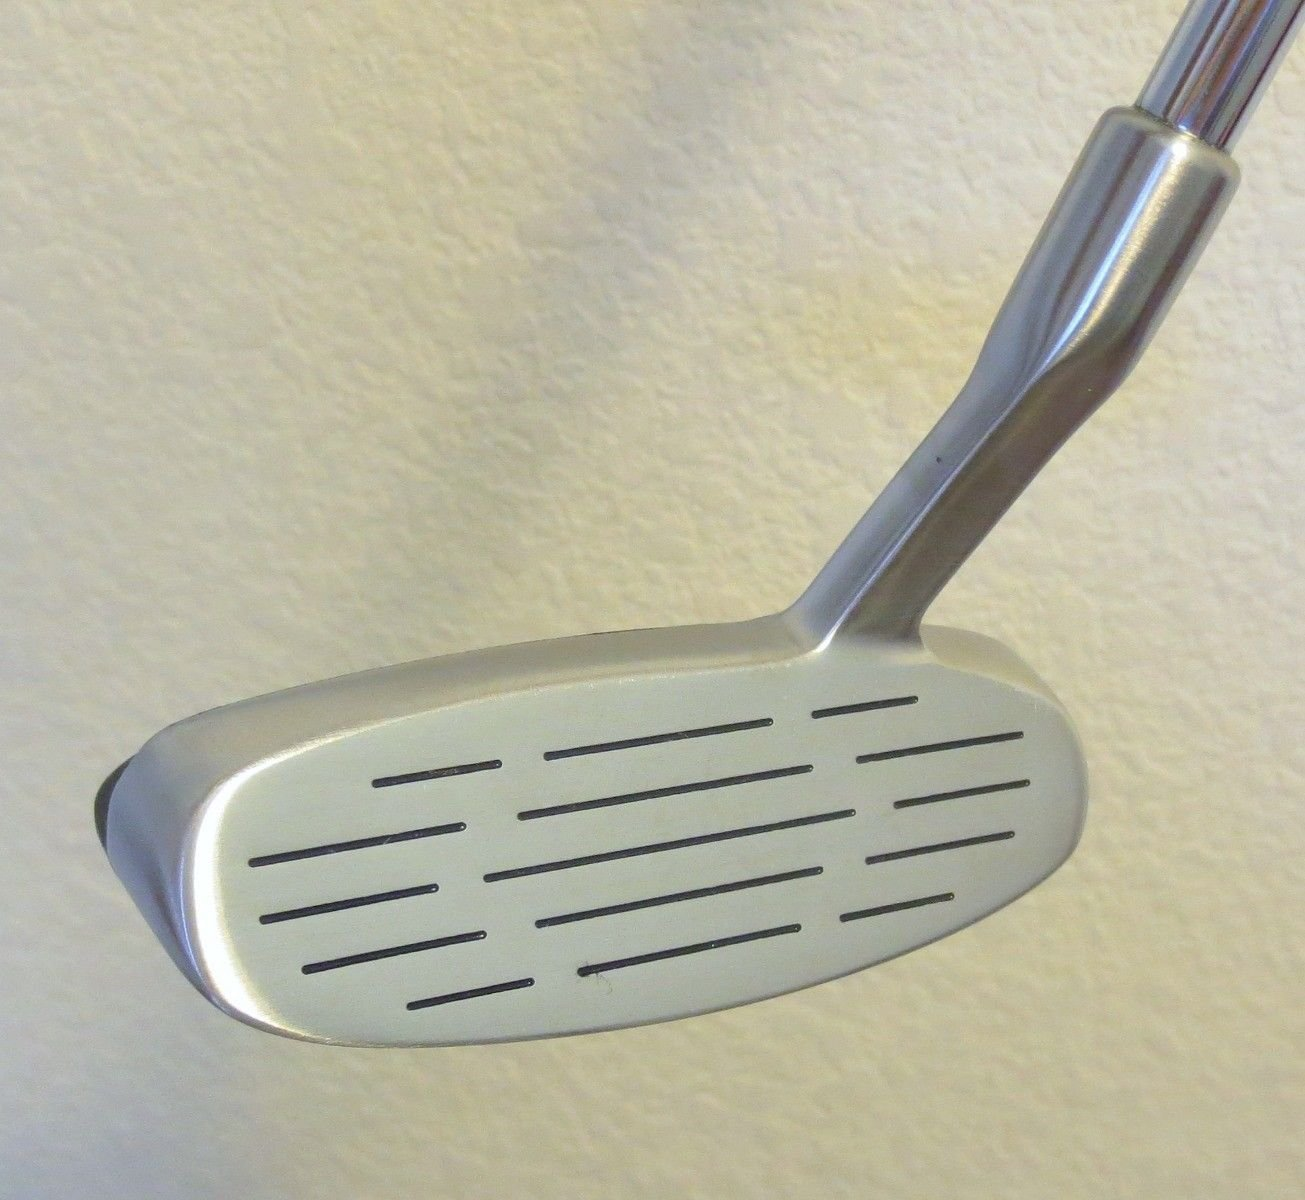 PreciseGolfCo. Golf Chipper HX-9 Chipping Wedge Golf Club Latest Technology, Best Chipper No More Shanks by Precise